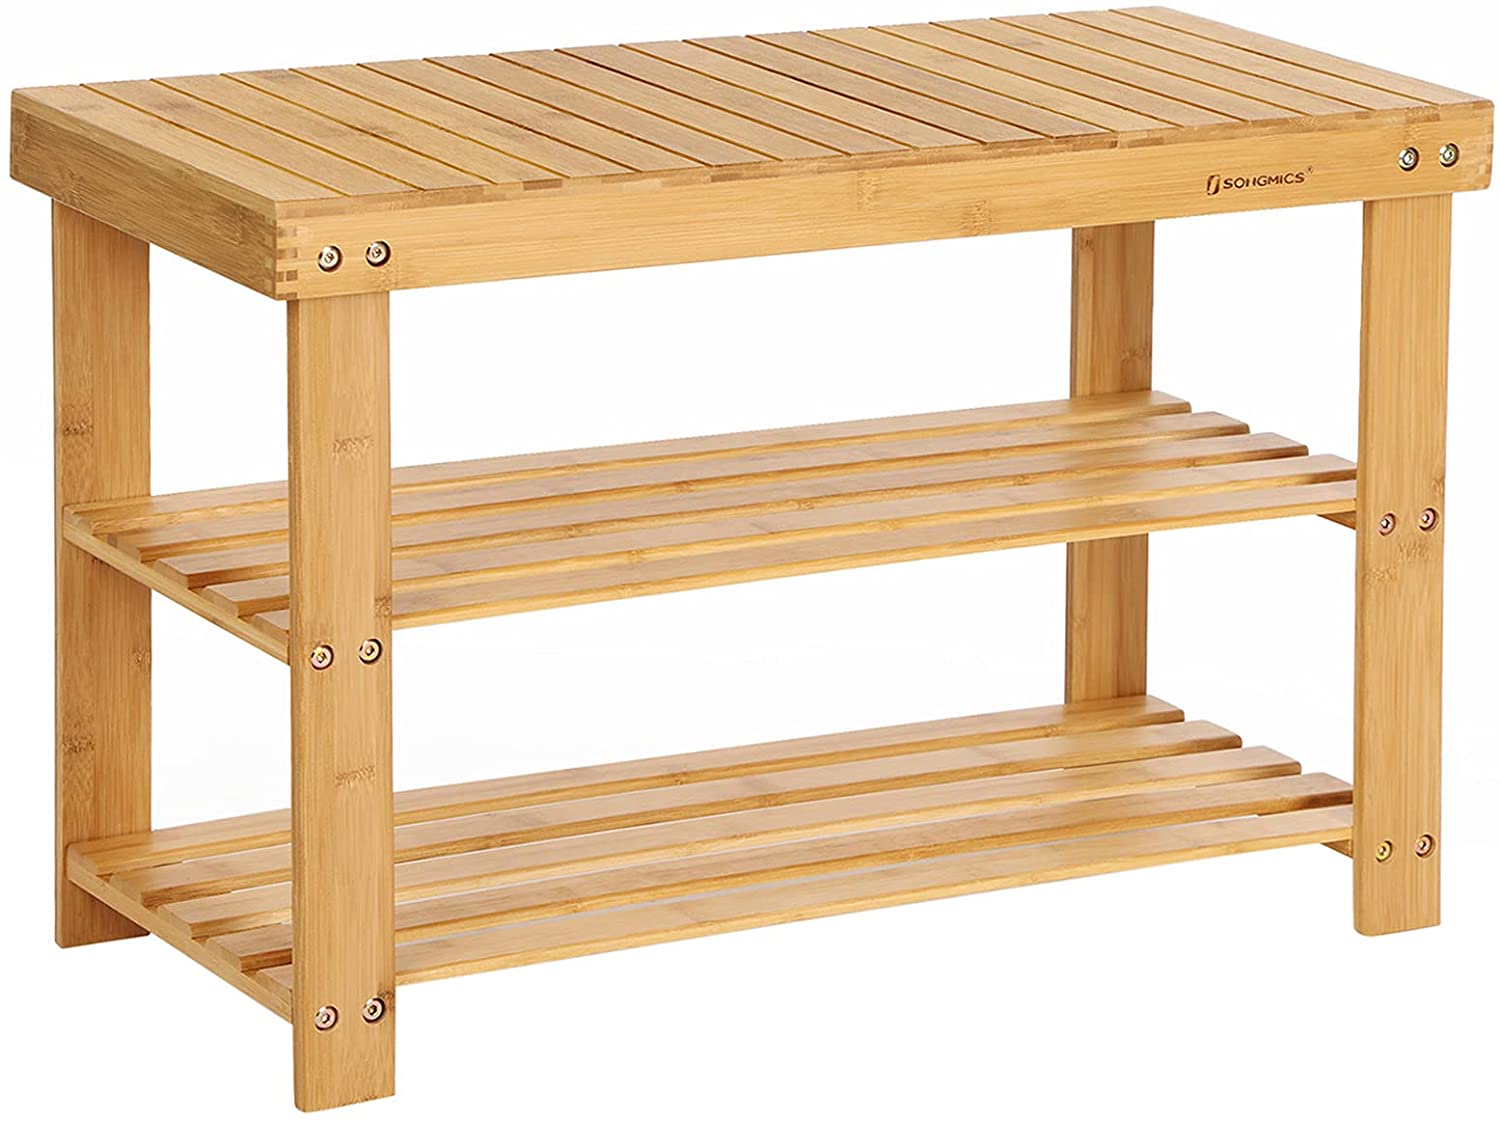 SONGMICS Shoe Rack Bench 3-Tier Organizer S discount Storage outlet Bamboo